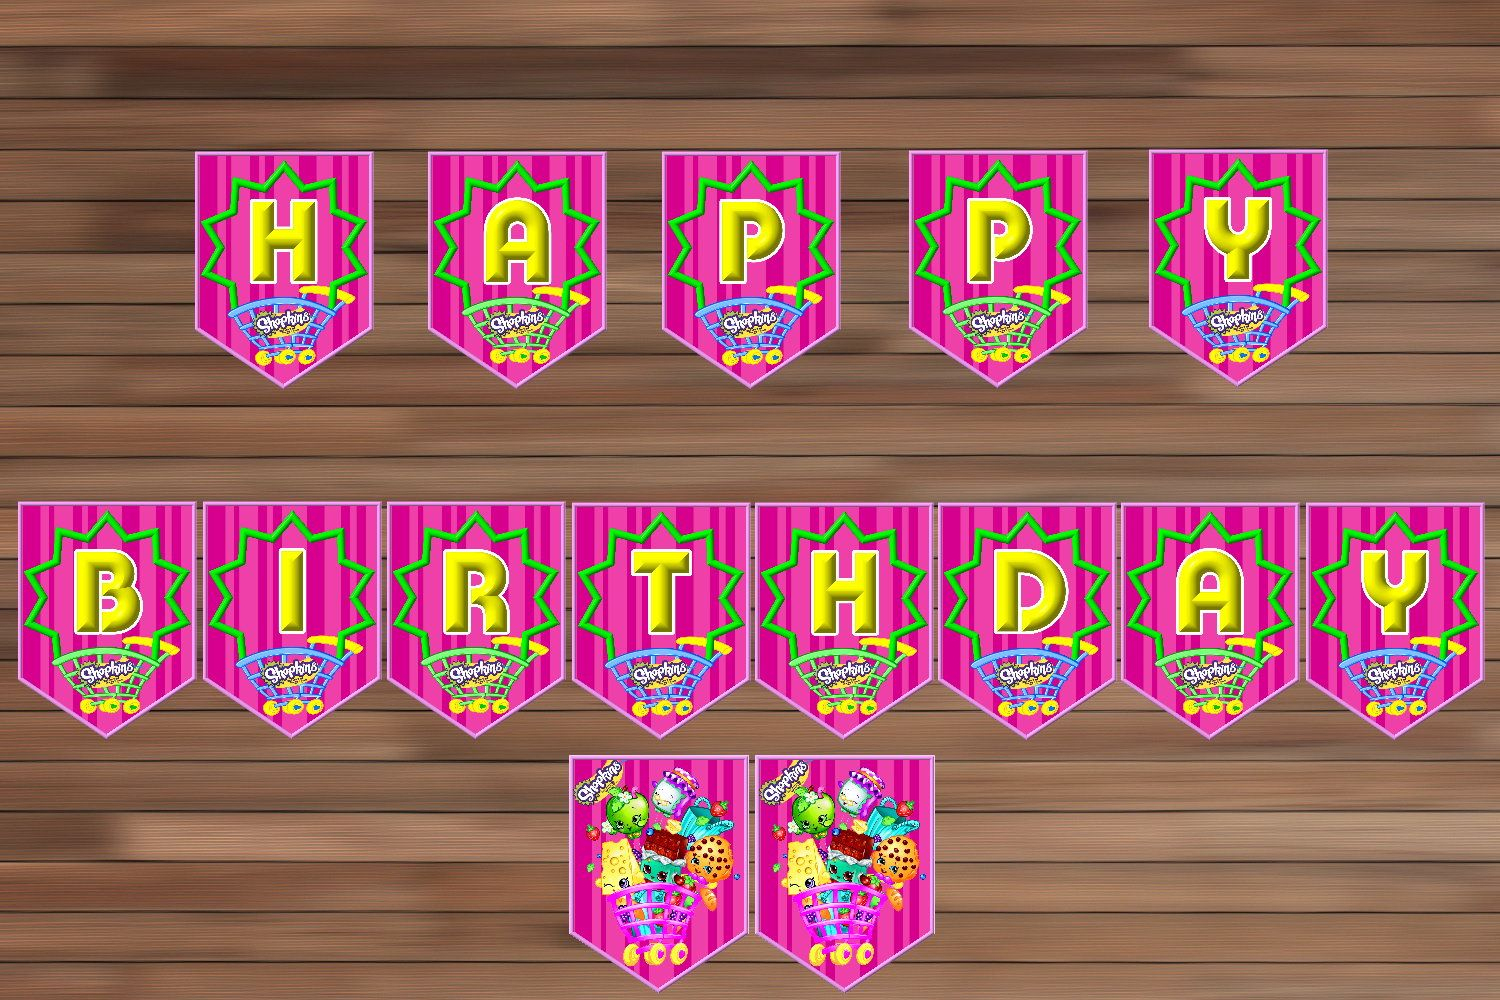 7 Images Of S Hopkins Birthday Party Printables | Prints | Pinterest - Shopkins Banner Printable Free